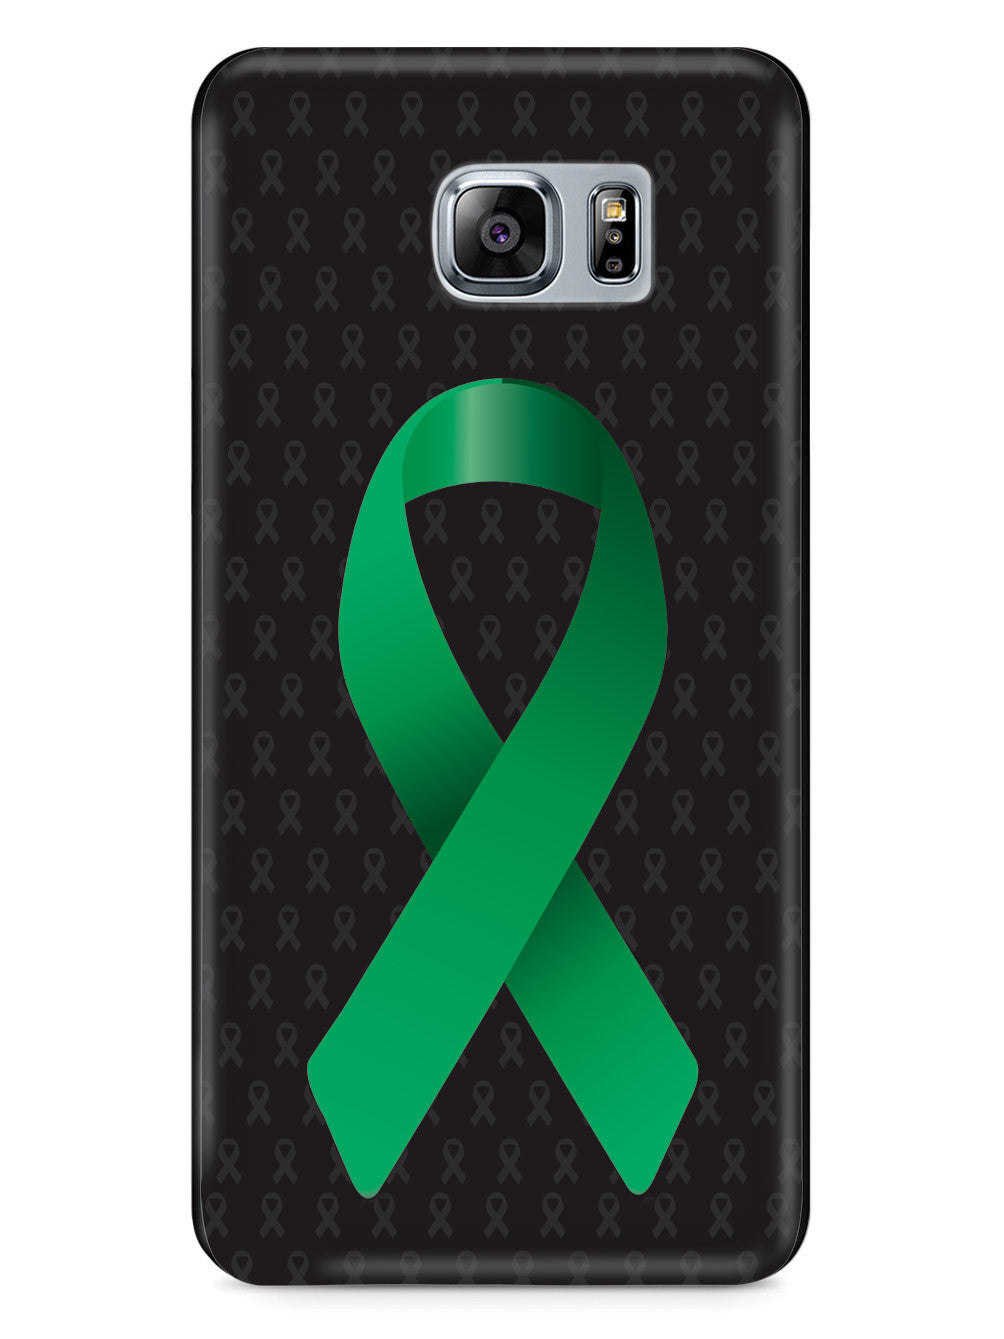 Green Awareness Ribbon - Black Case